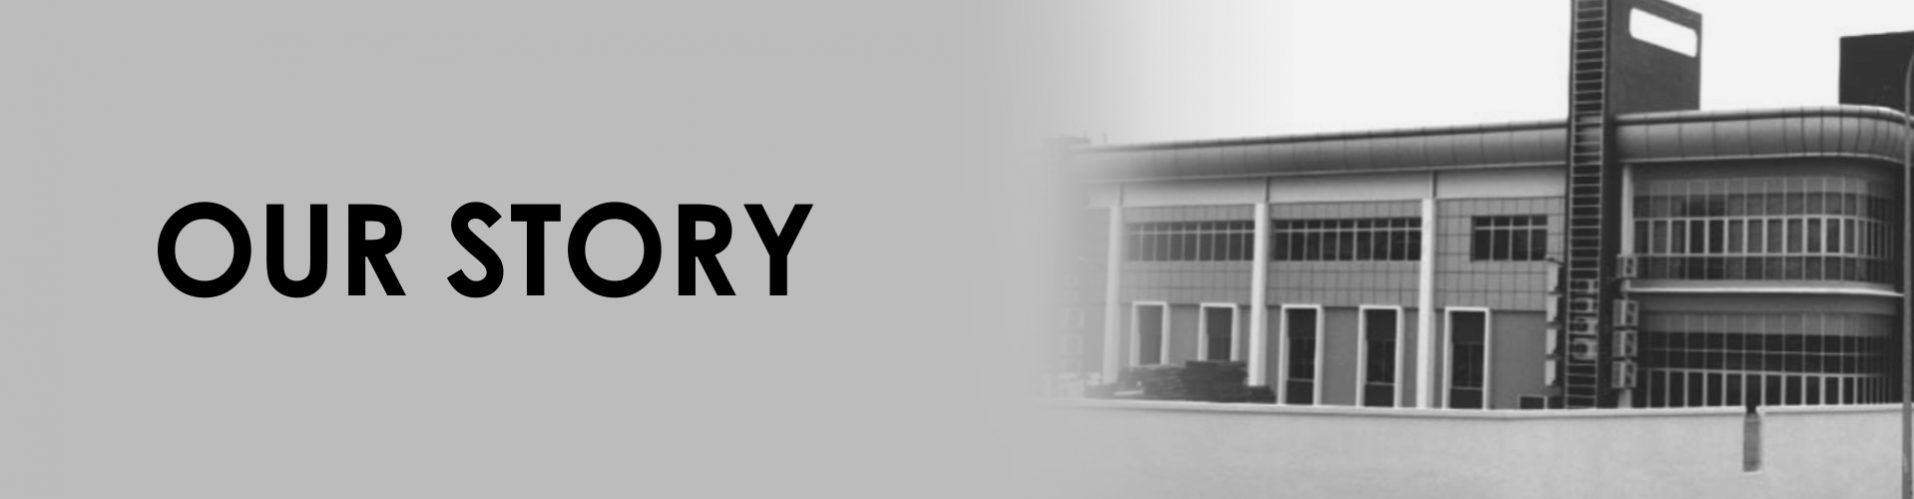 Banner our story 2